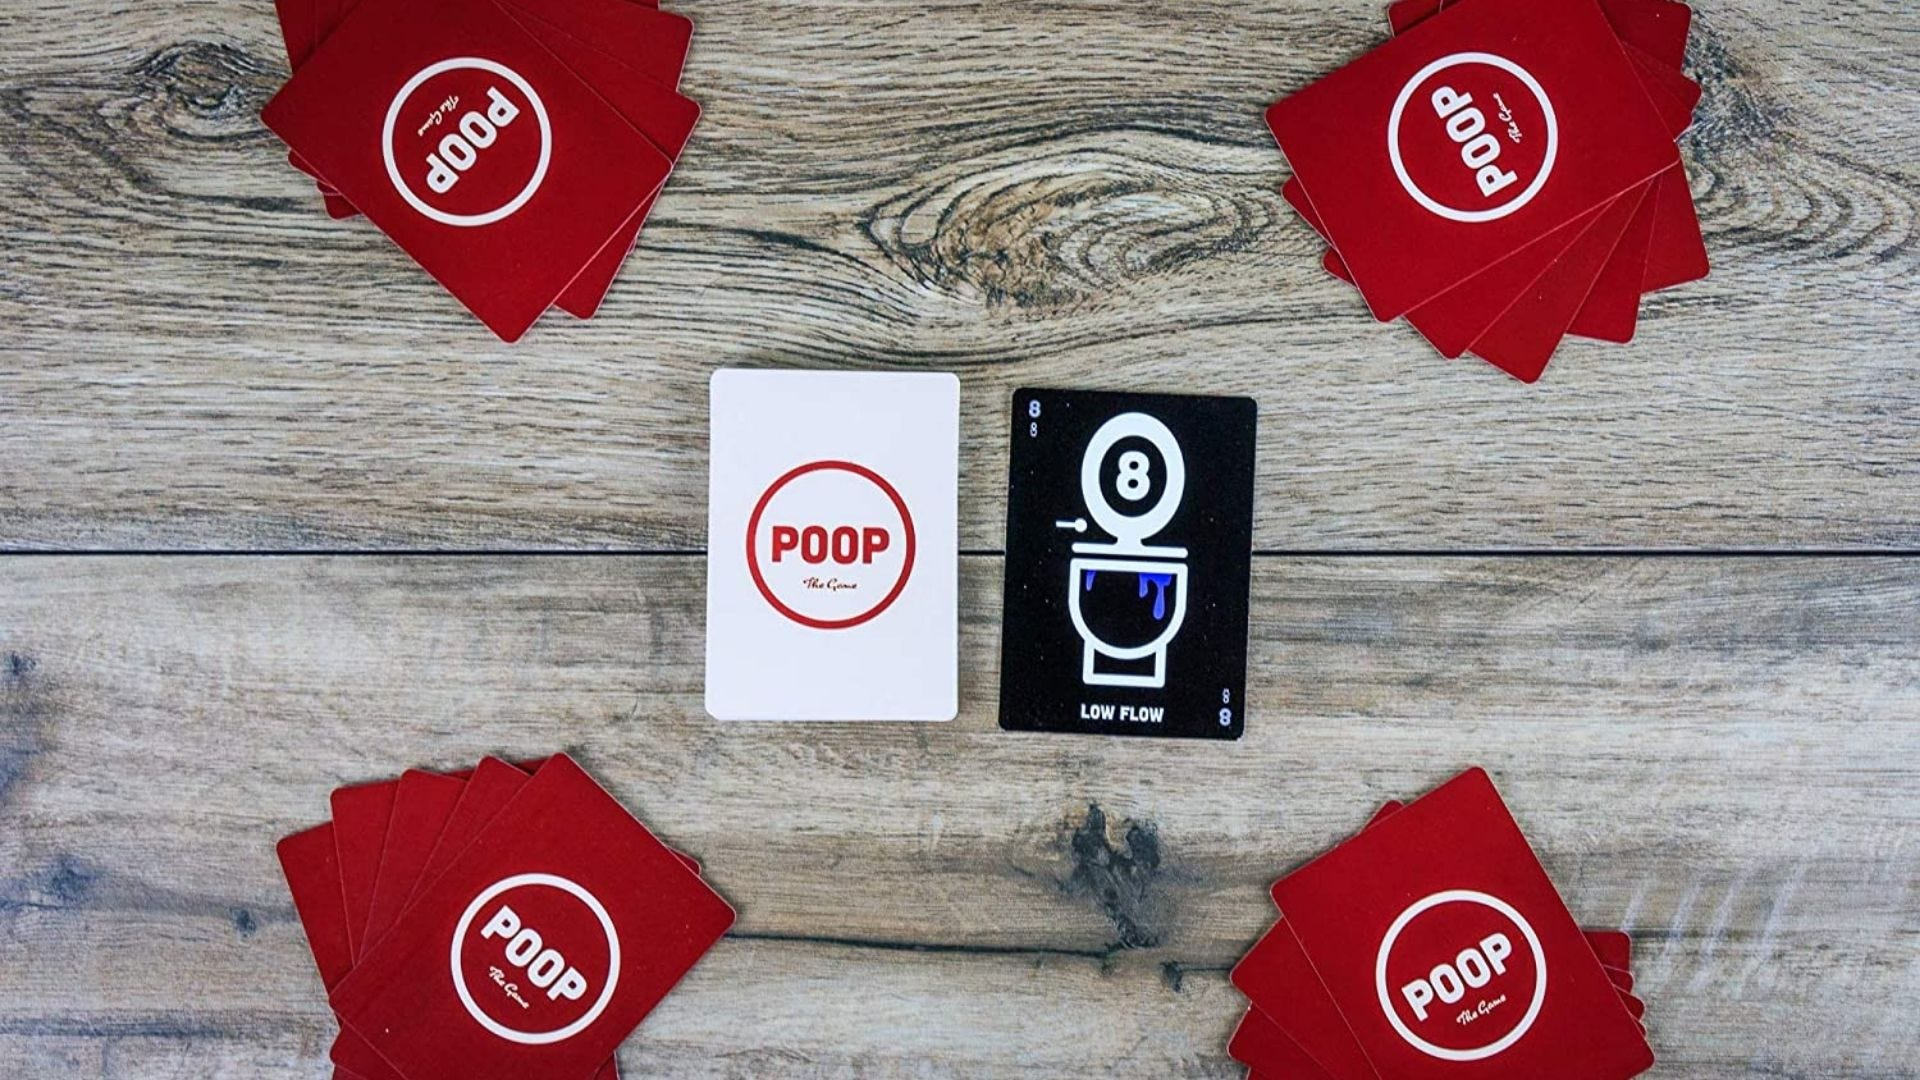 Poop Friendly Party card board game